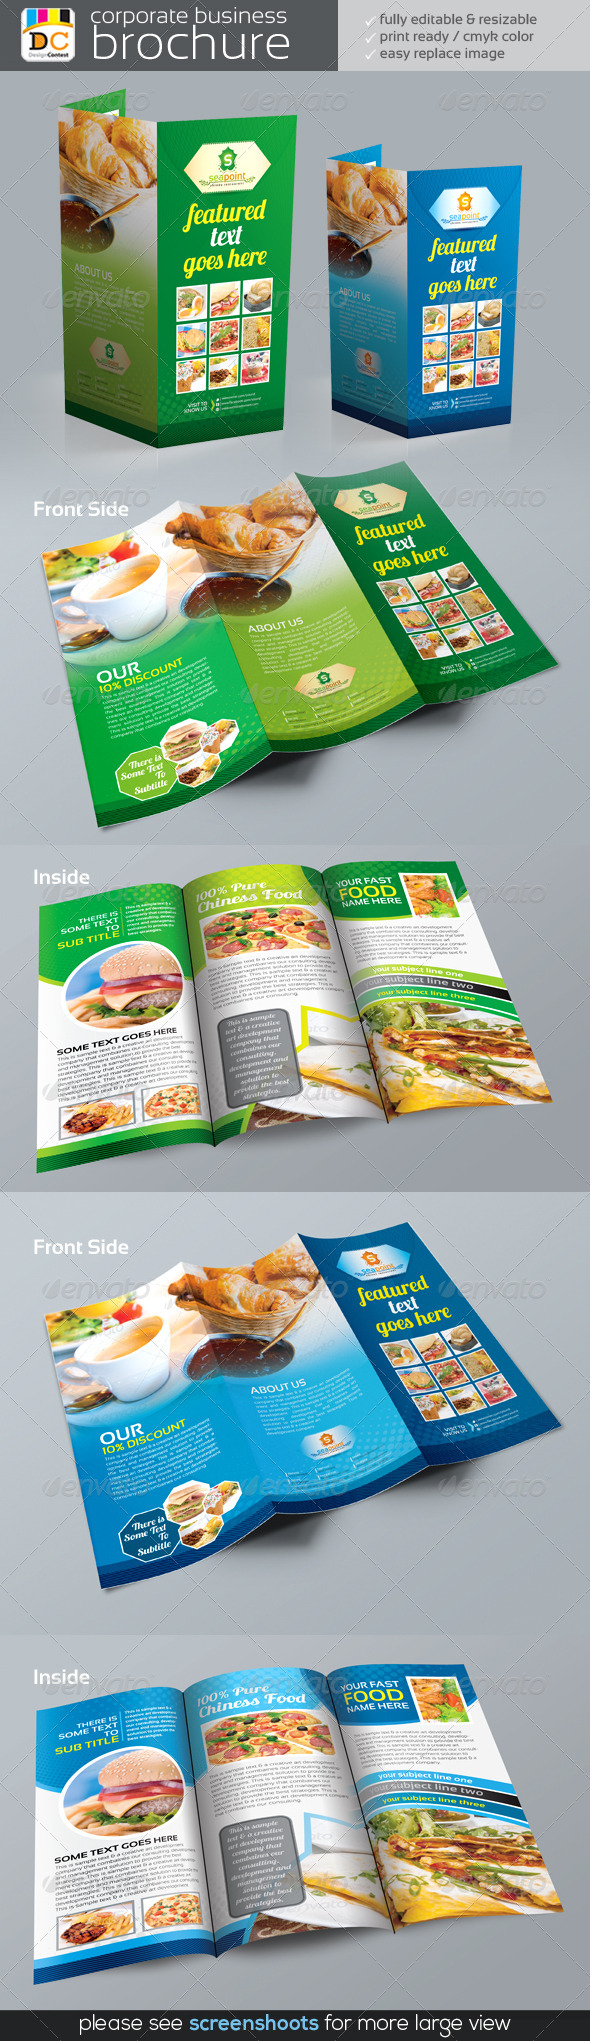 Sea Point Tri-fold Corporate Business Brochure